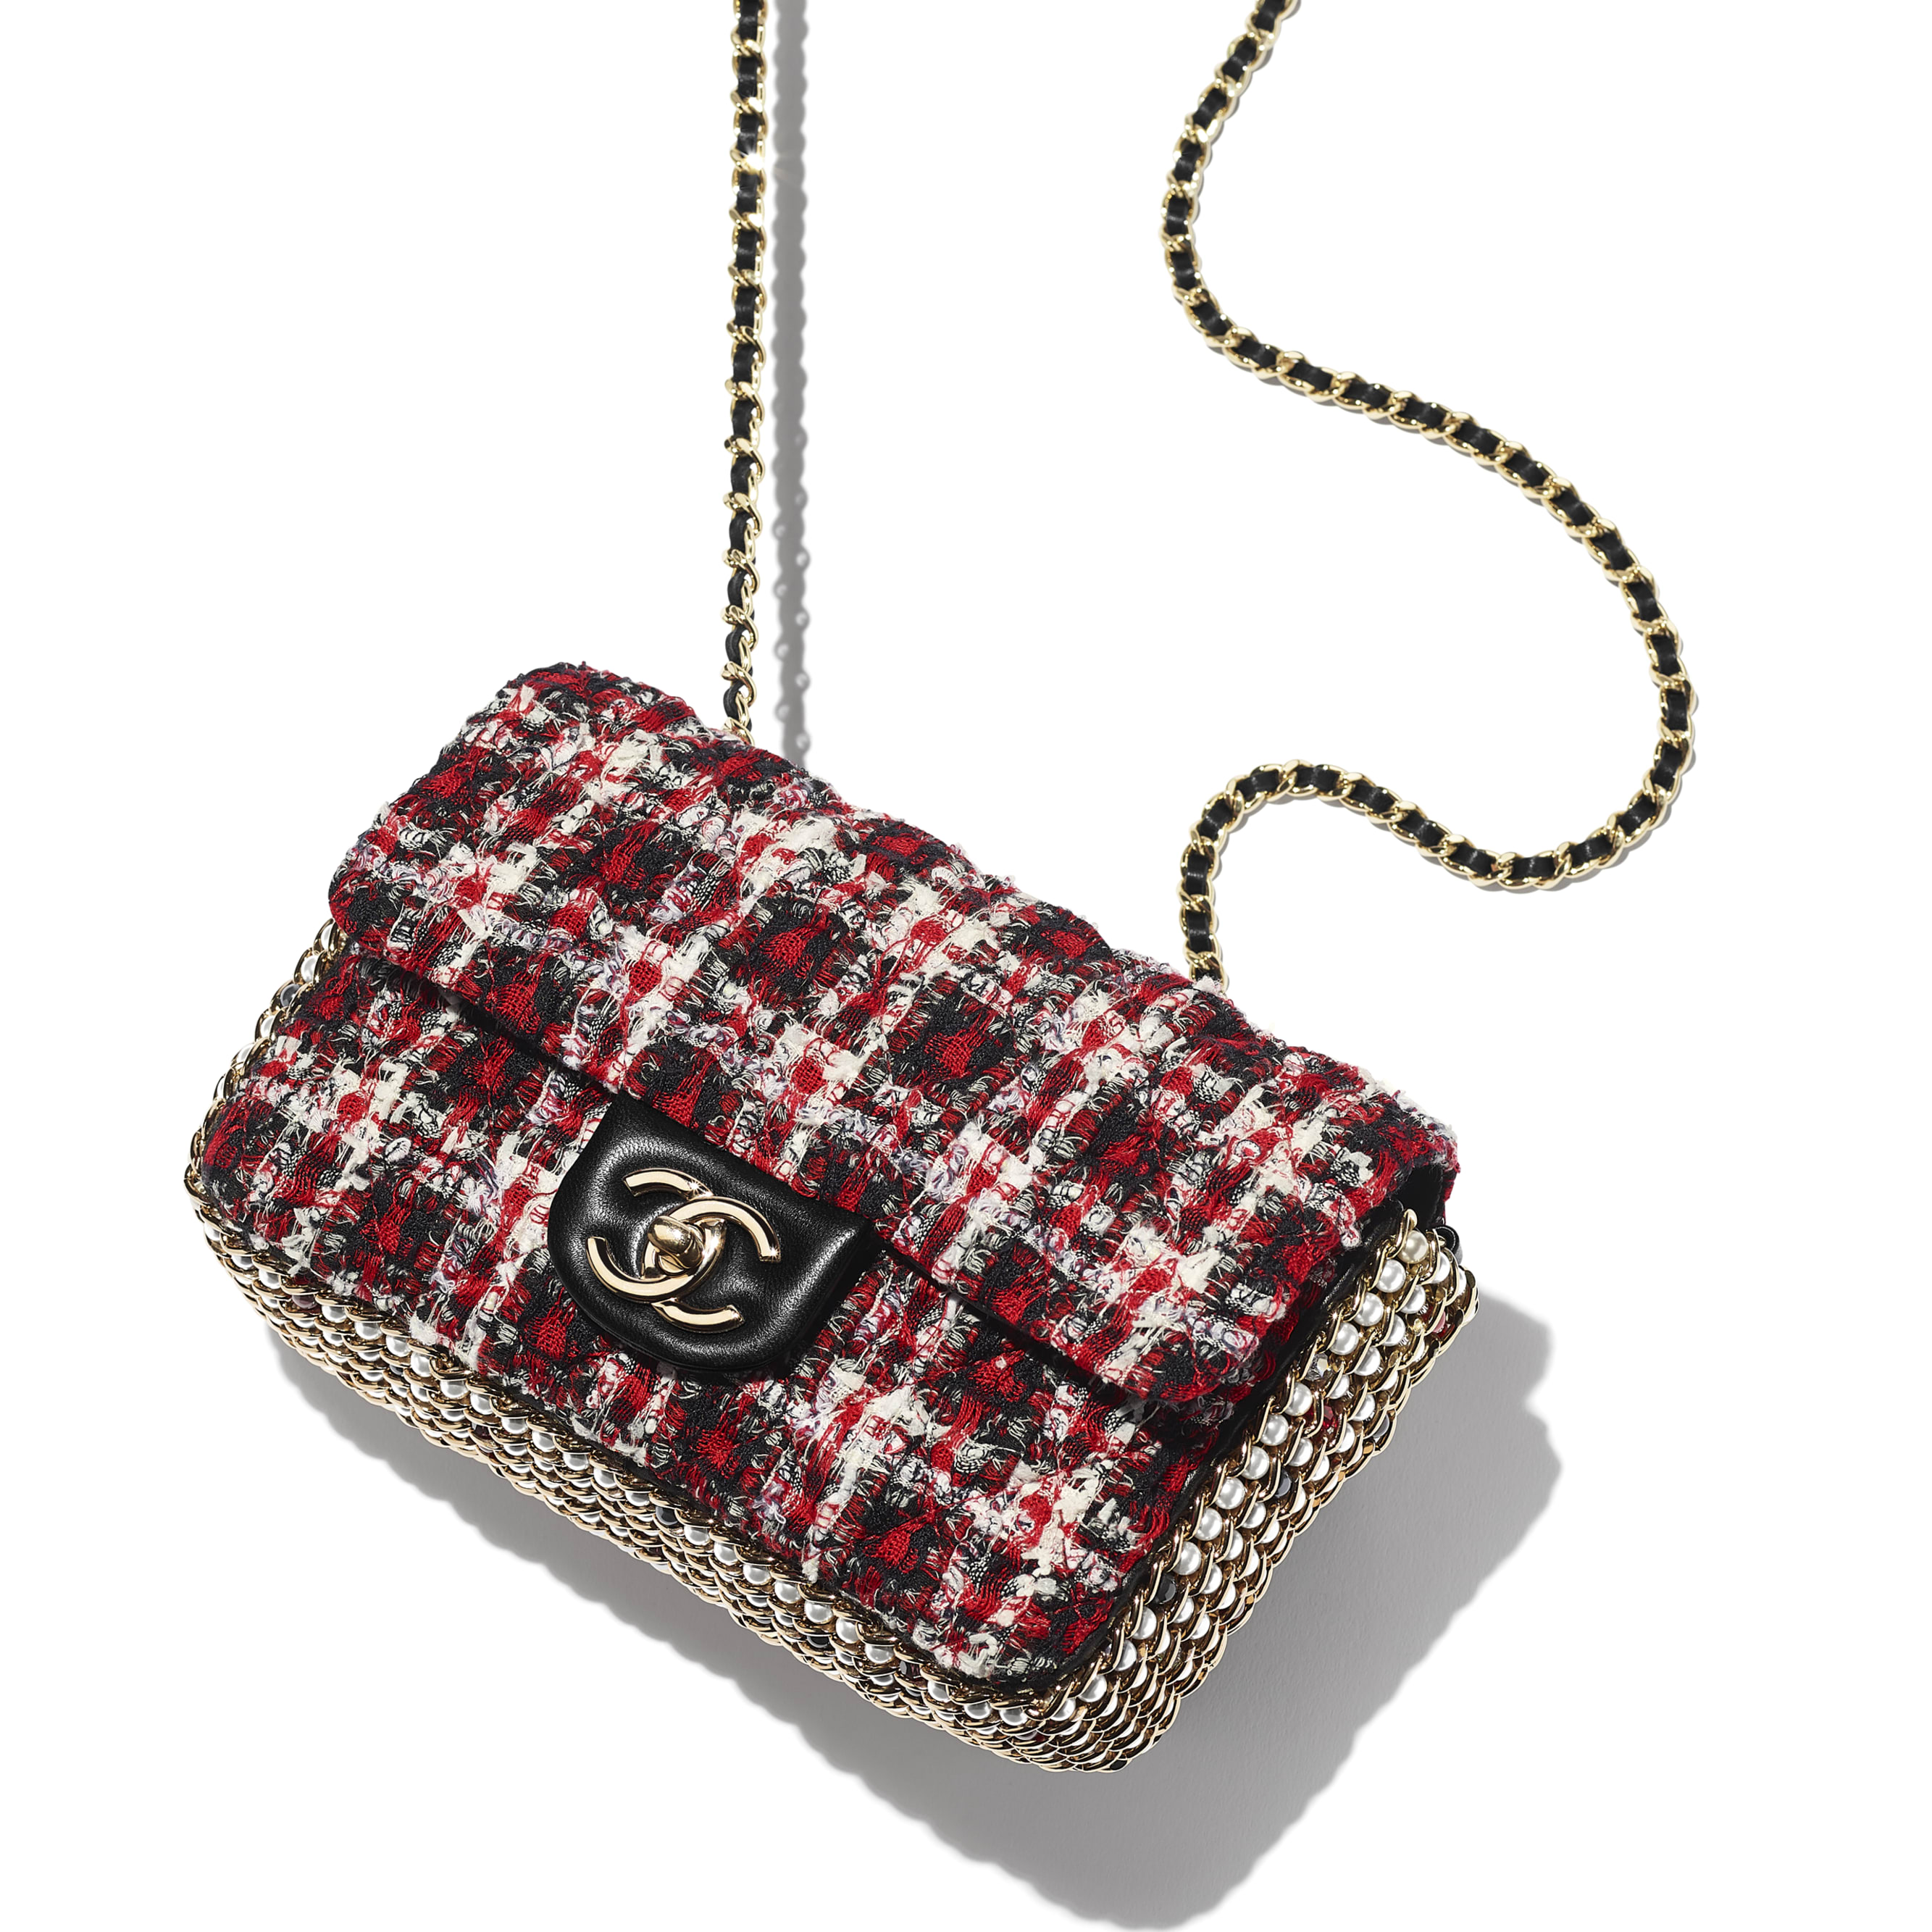 Flap Bag - Red, Black & White - Tweed, Imitation Pearls & Gold-Tone Metal - Extra view - see standard sized version